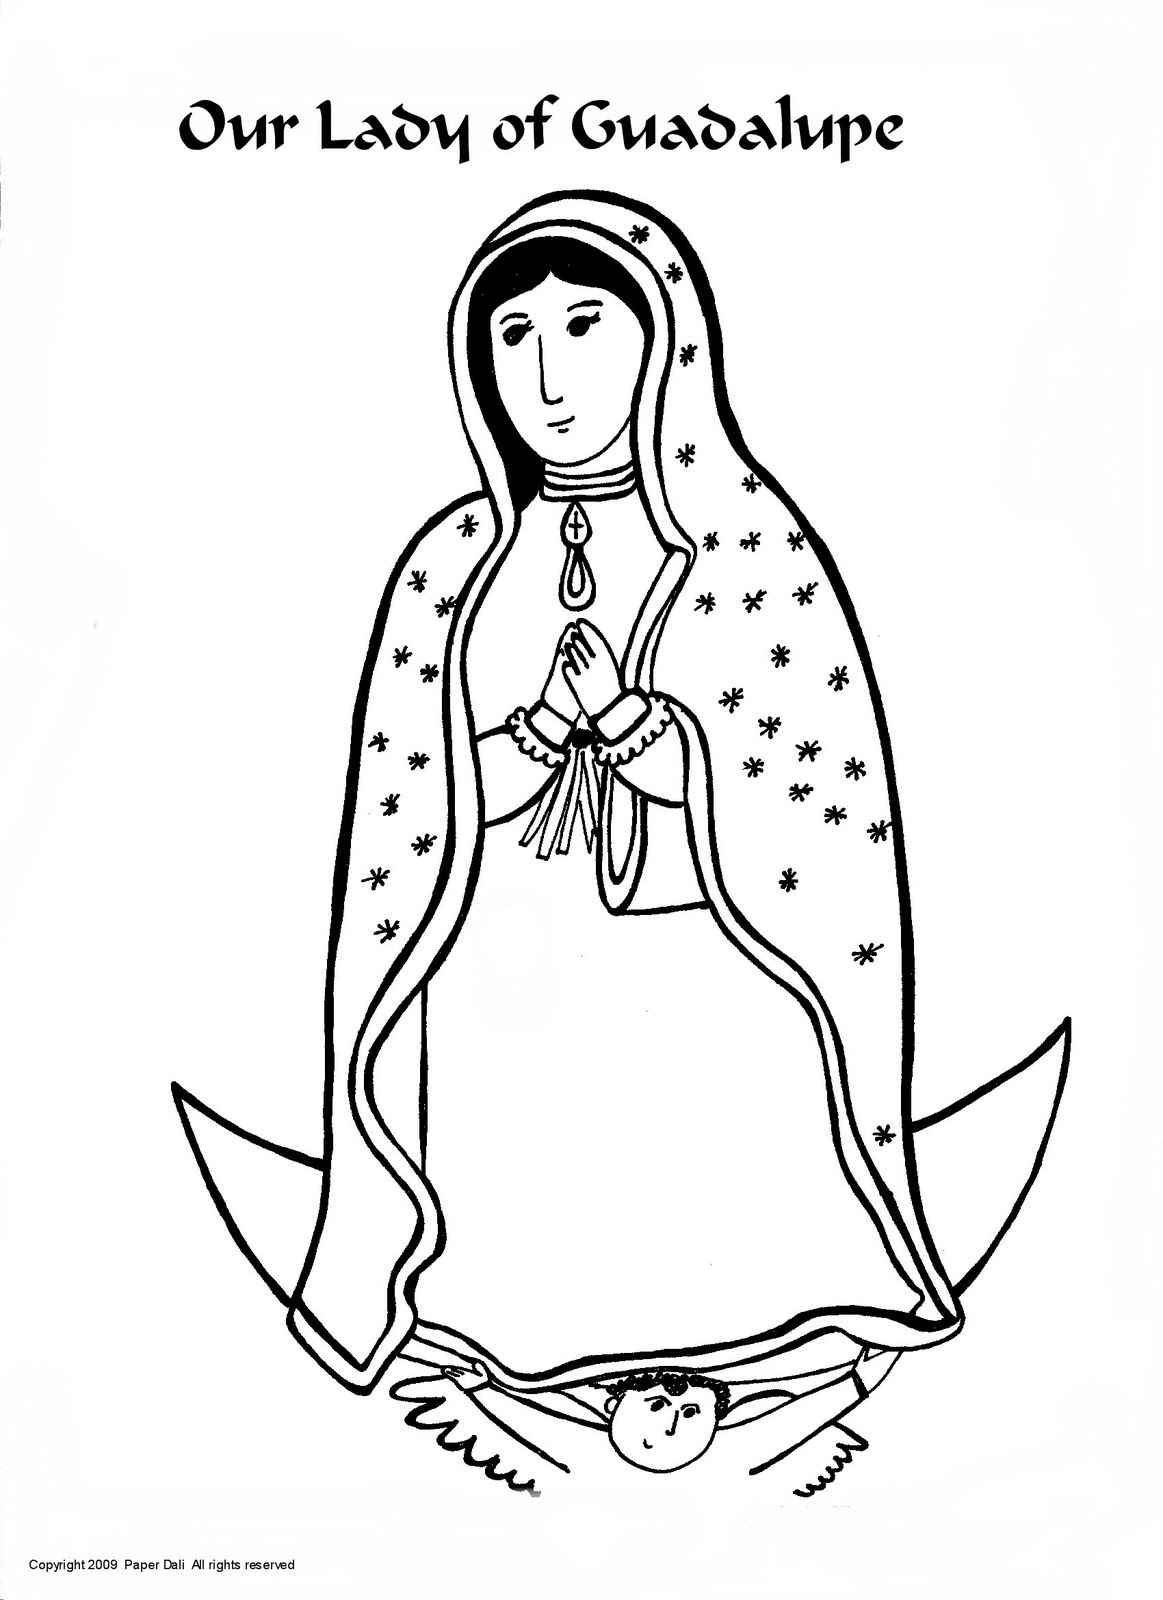 Our Lady of Guadalupe Coloring Activity.